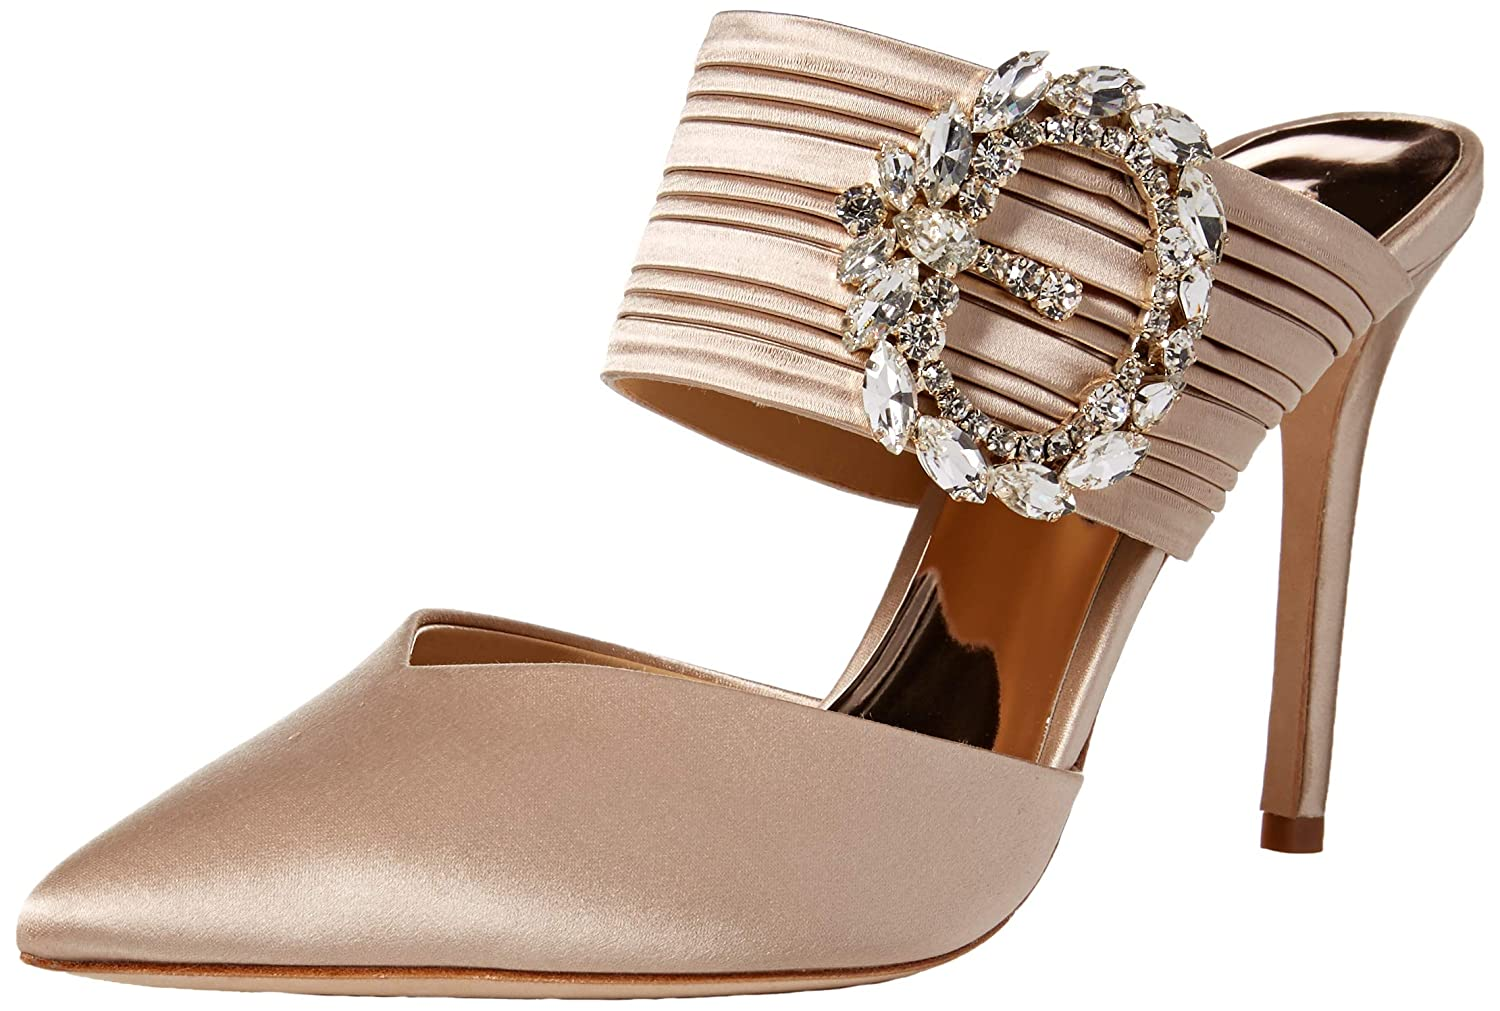 Nude Satin Badgley Mischka Womens Fancy Mule